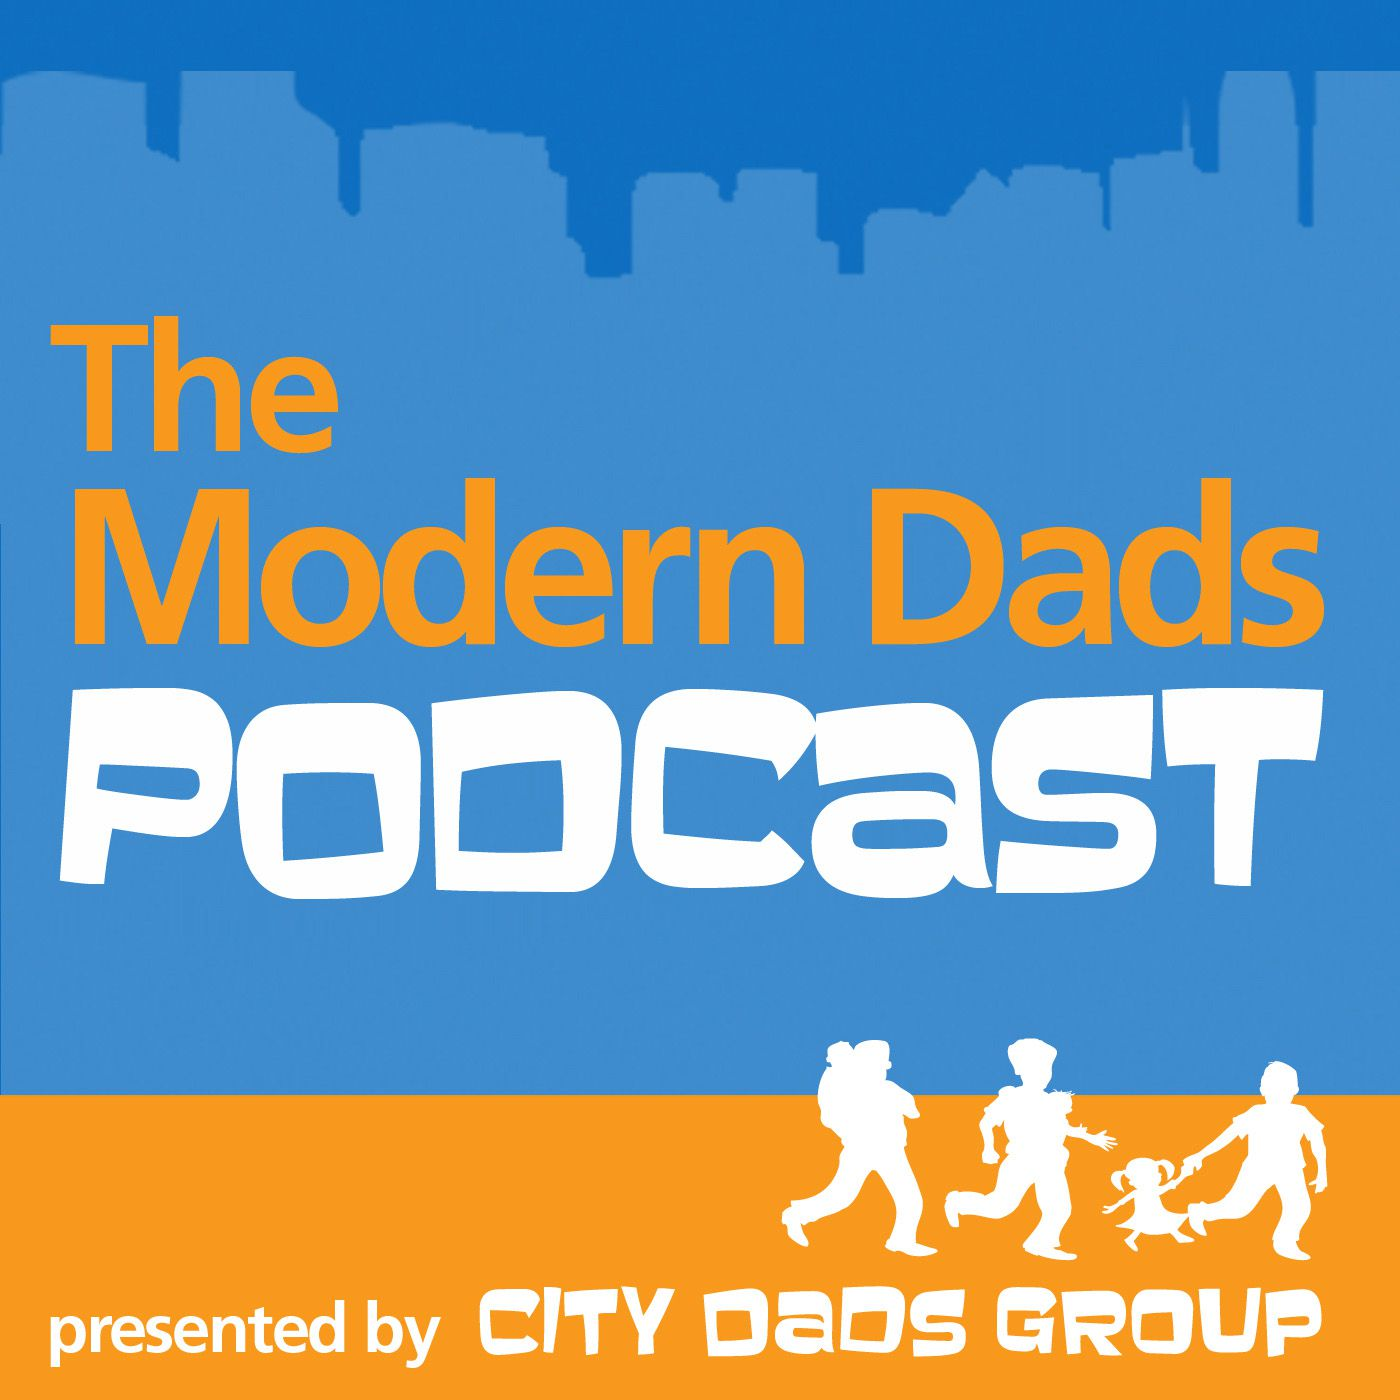 The Modern Dad Podcast